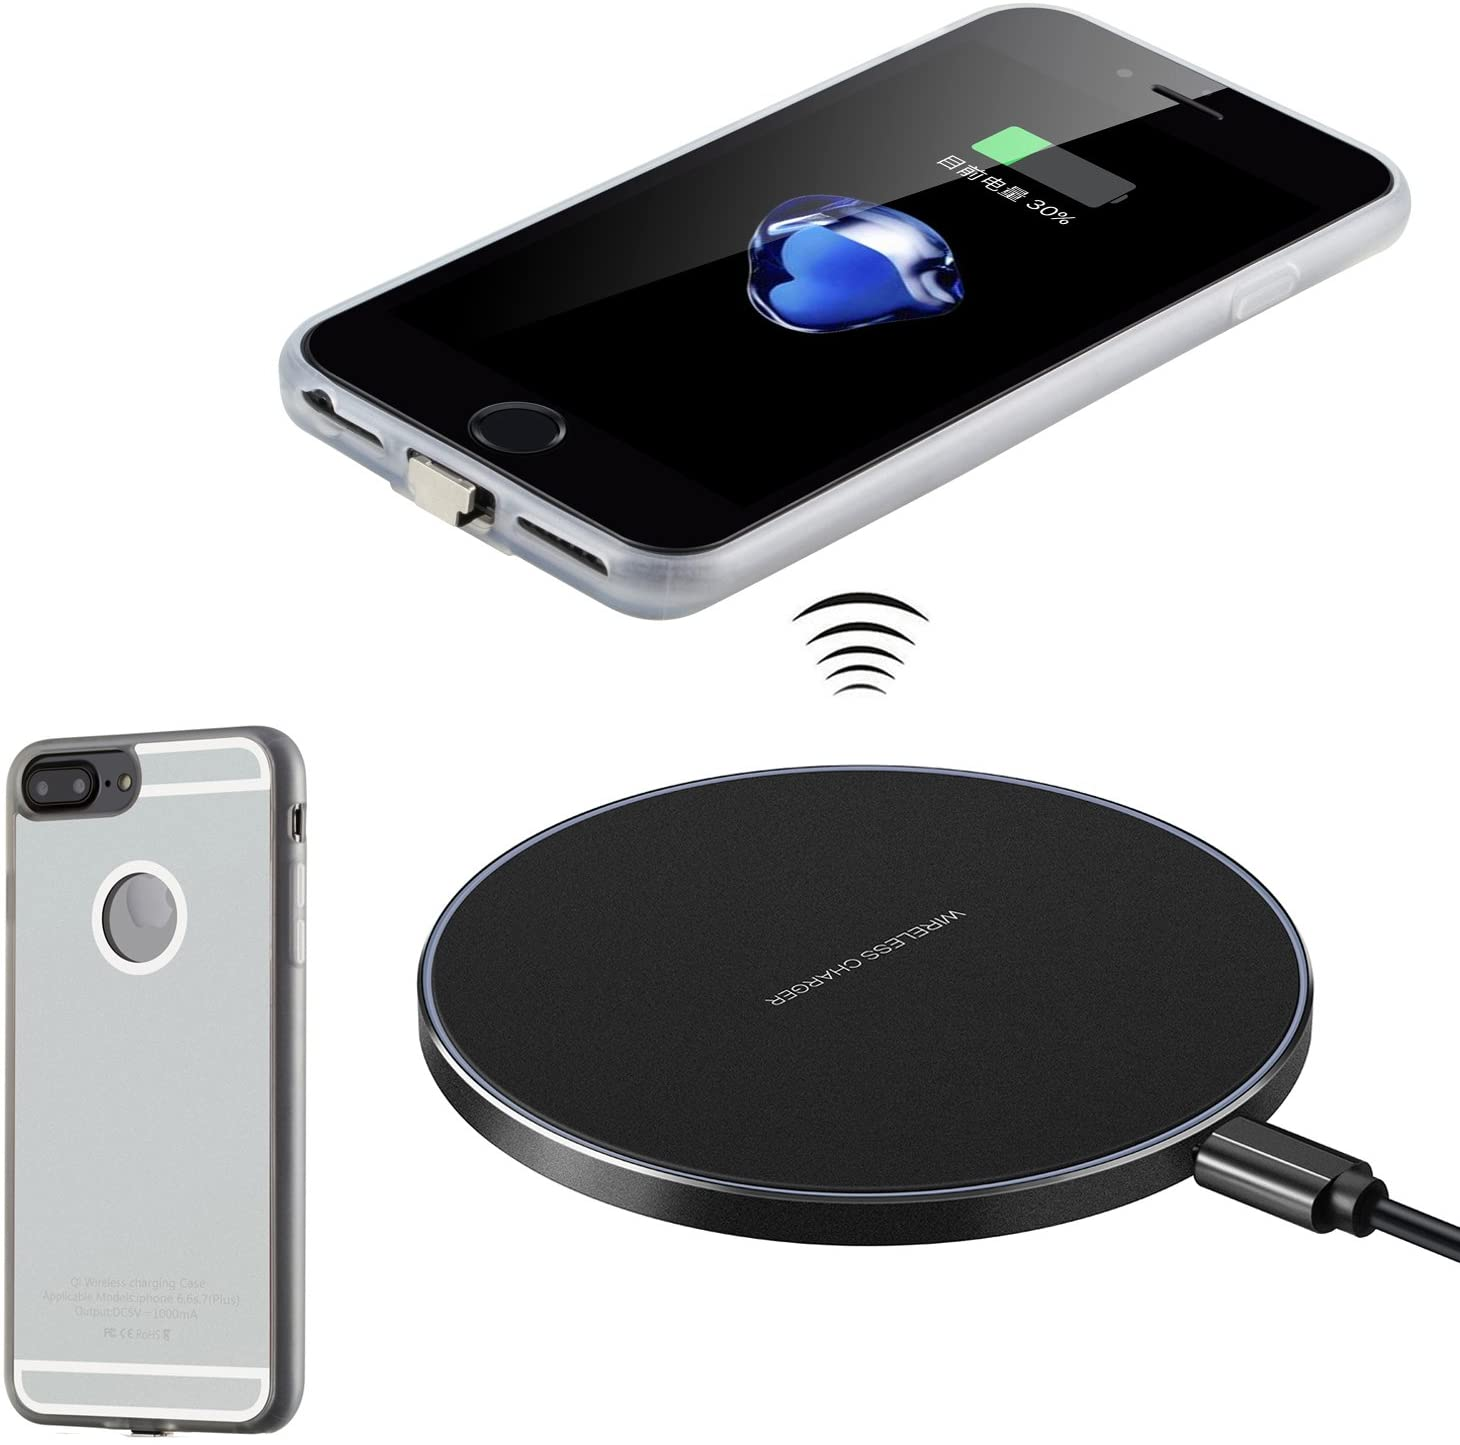 Antye Qi Wireless Charger Kit for iPhone 7 Plus, Including Wireless Charging Receiver Case TPU Back Cover and Aluminum Wireless Charging Pad Base